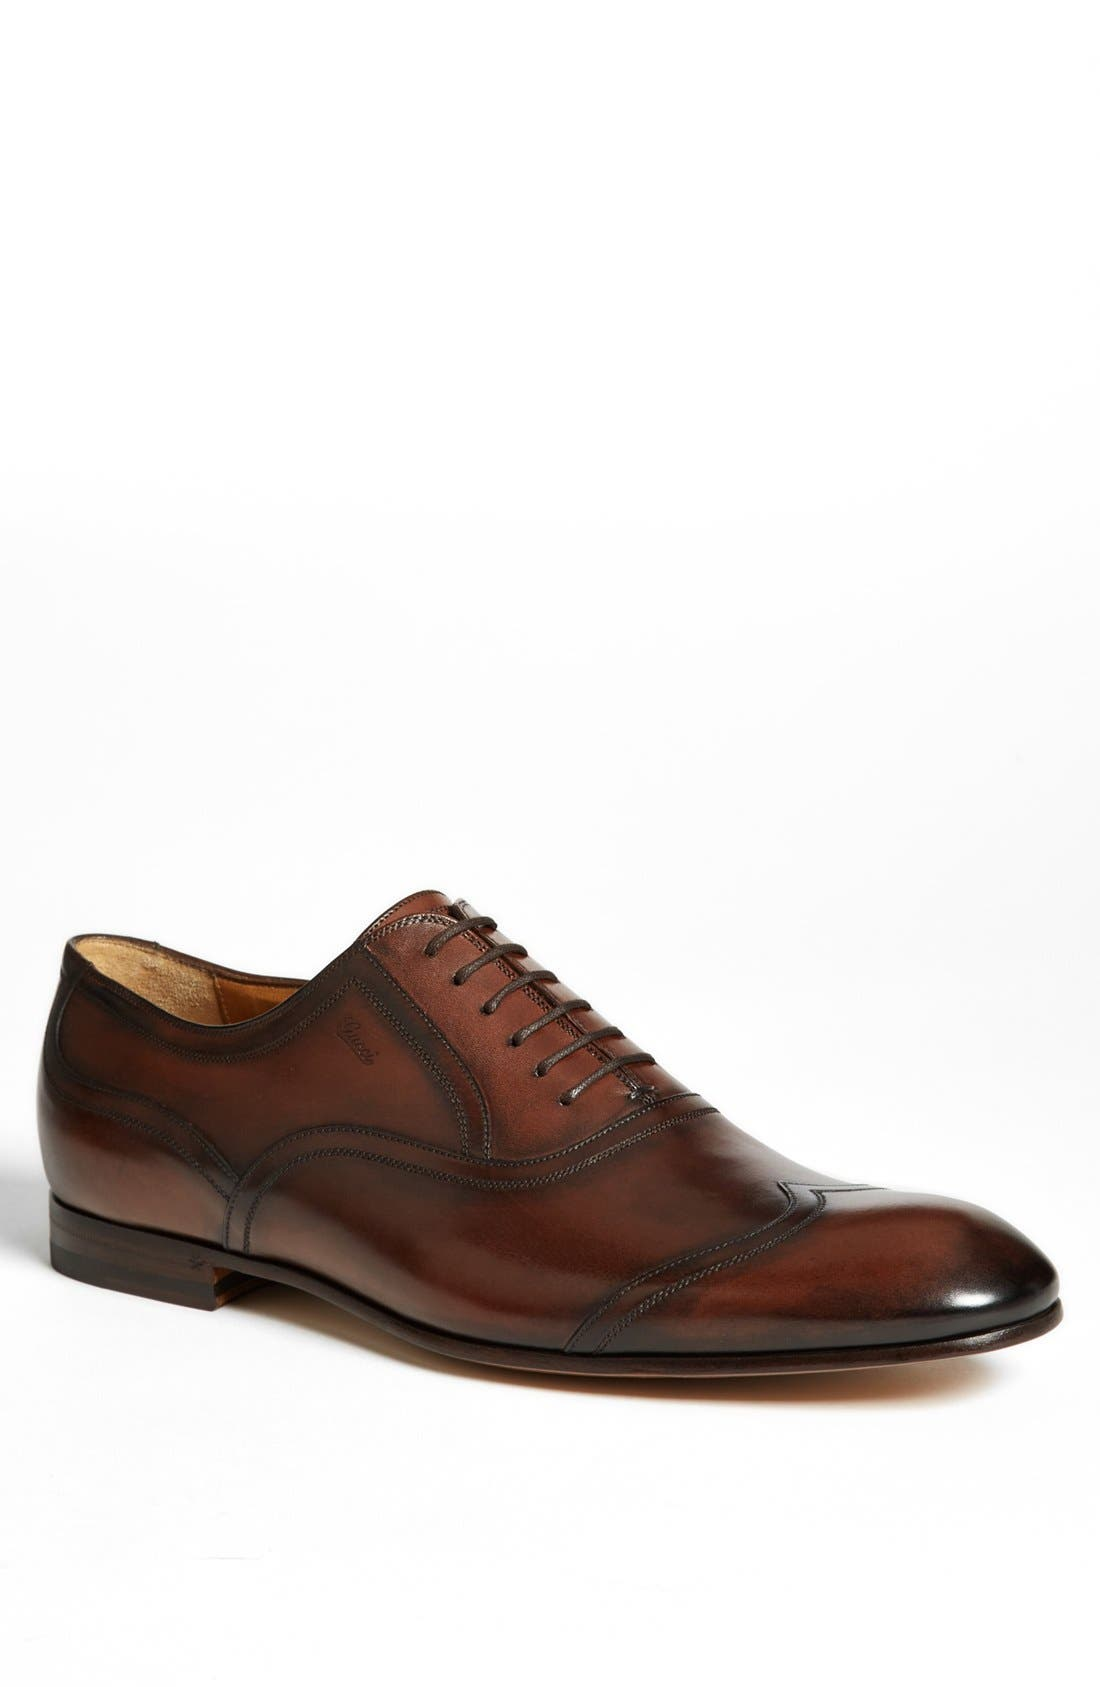 Alternate Image 1 Selected - Gucci 'Phil' Wingtip